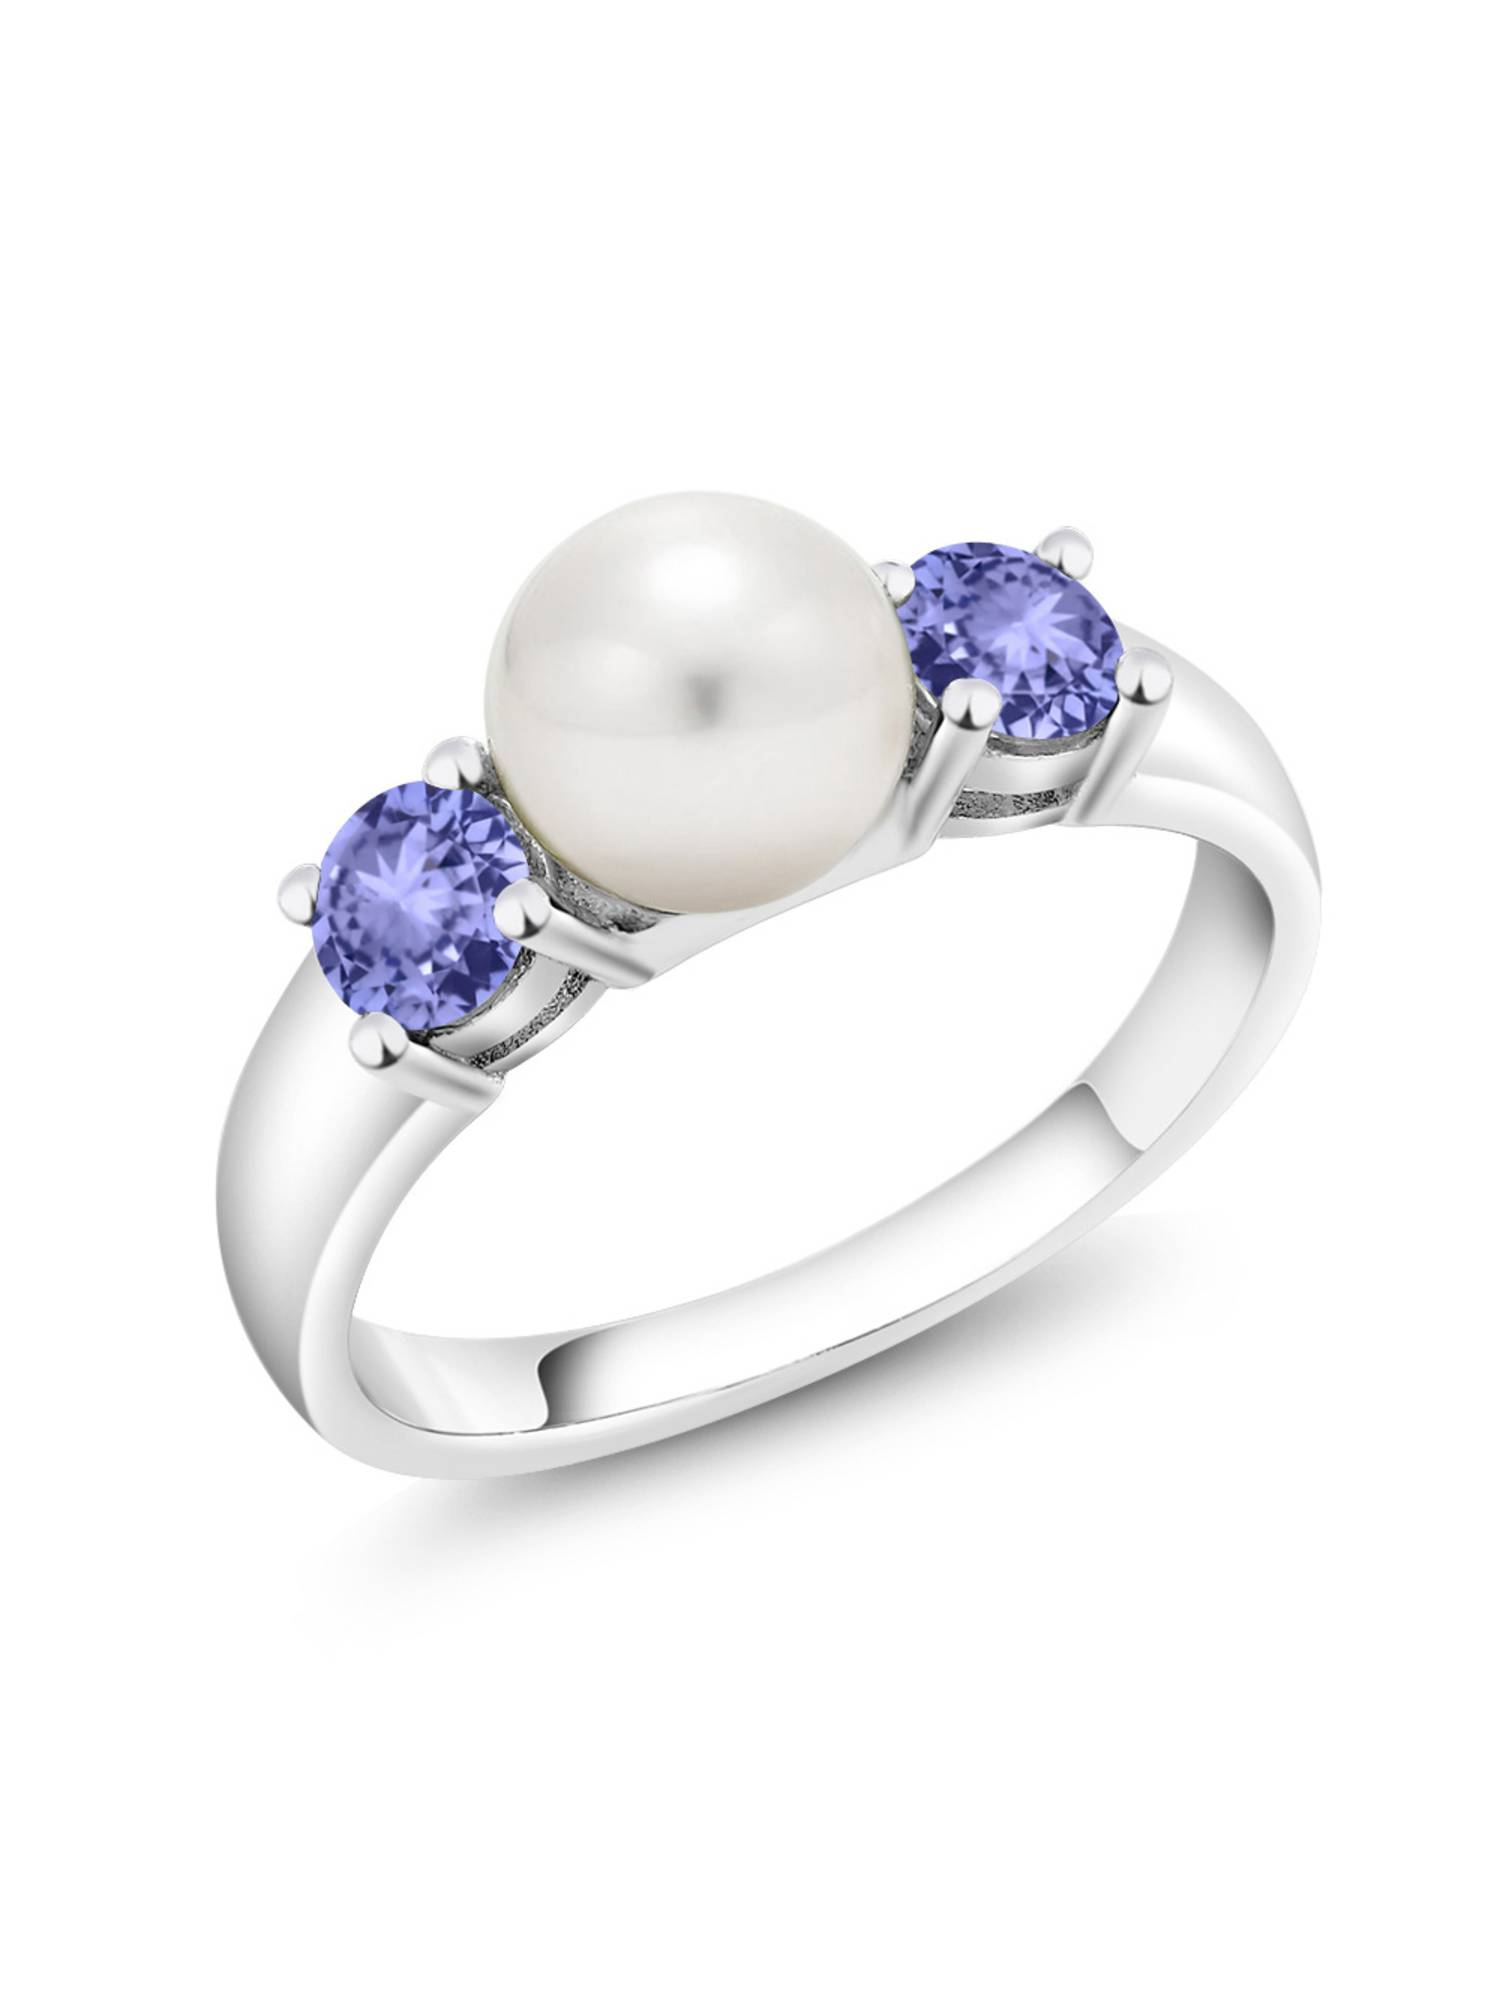 0.76 Ct Round Blue Tanzanite 925 Sterling Silver Freshwater Pearl Ring